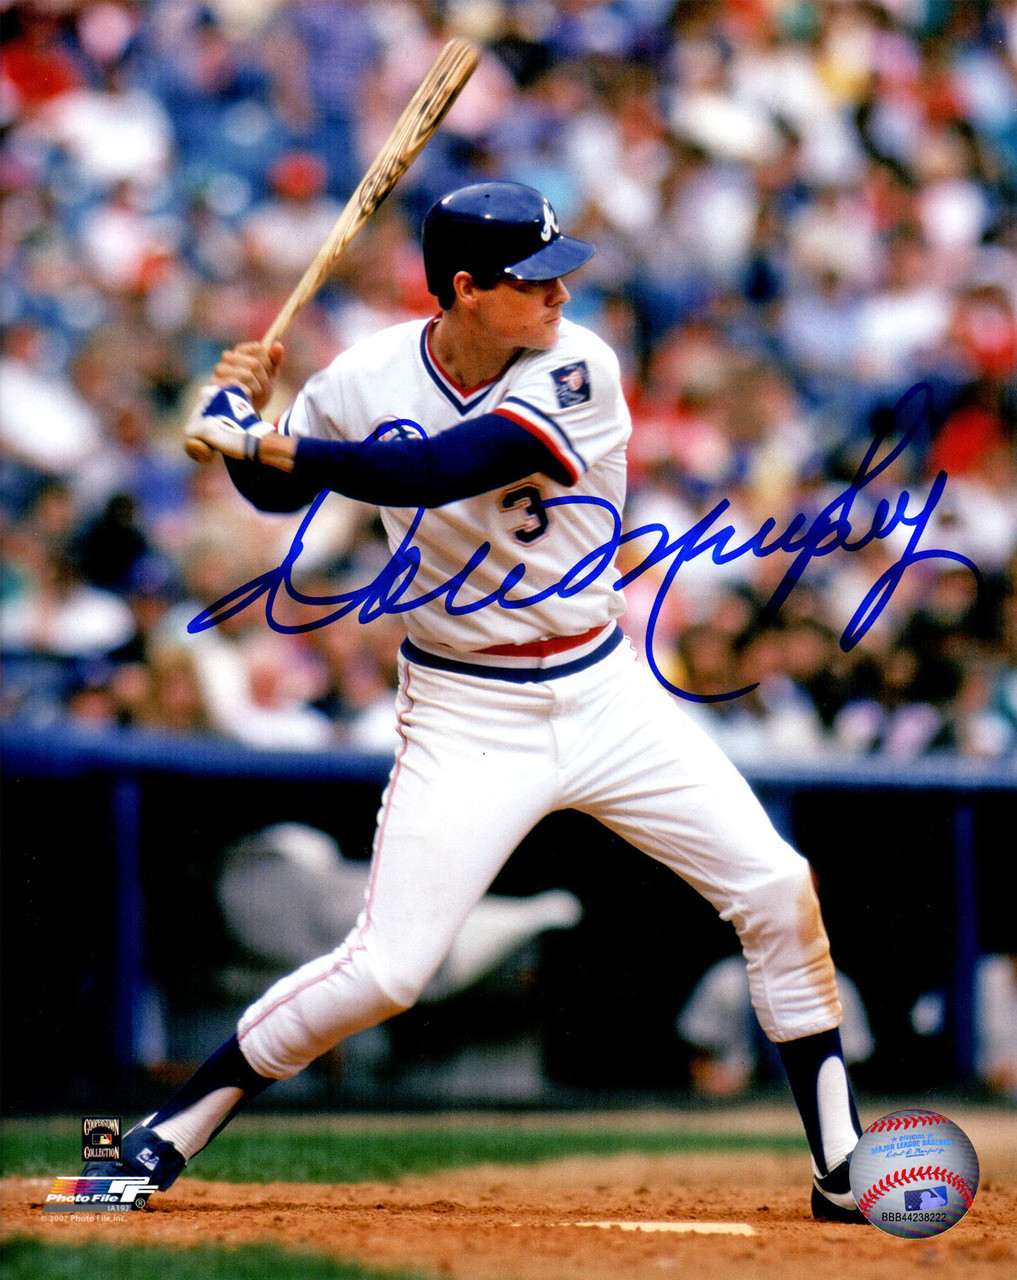 new concept f62c6 673a1 Dale Murphy Signed Atlanta Braves White Jersey Batting Action 8x10 Photo